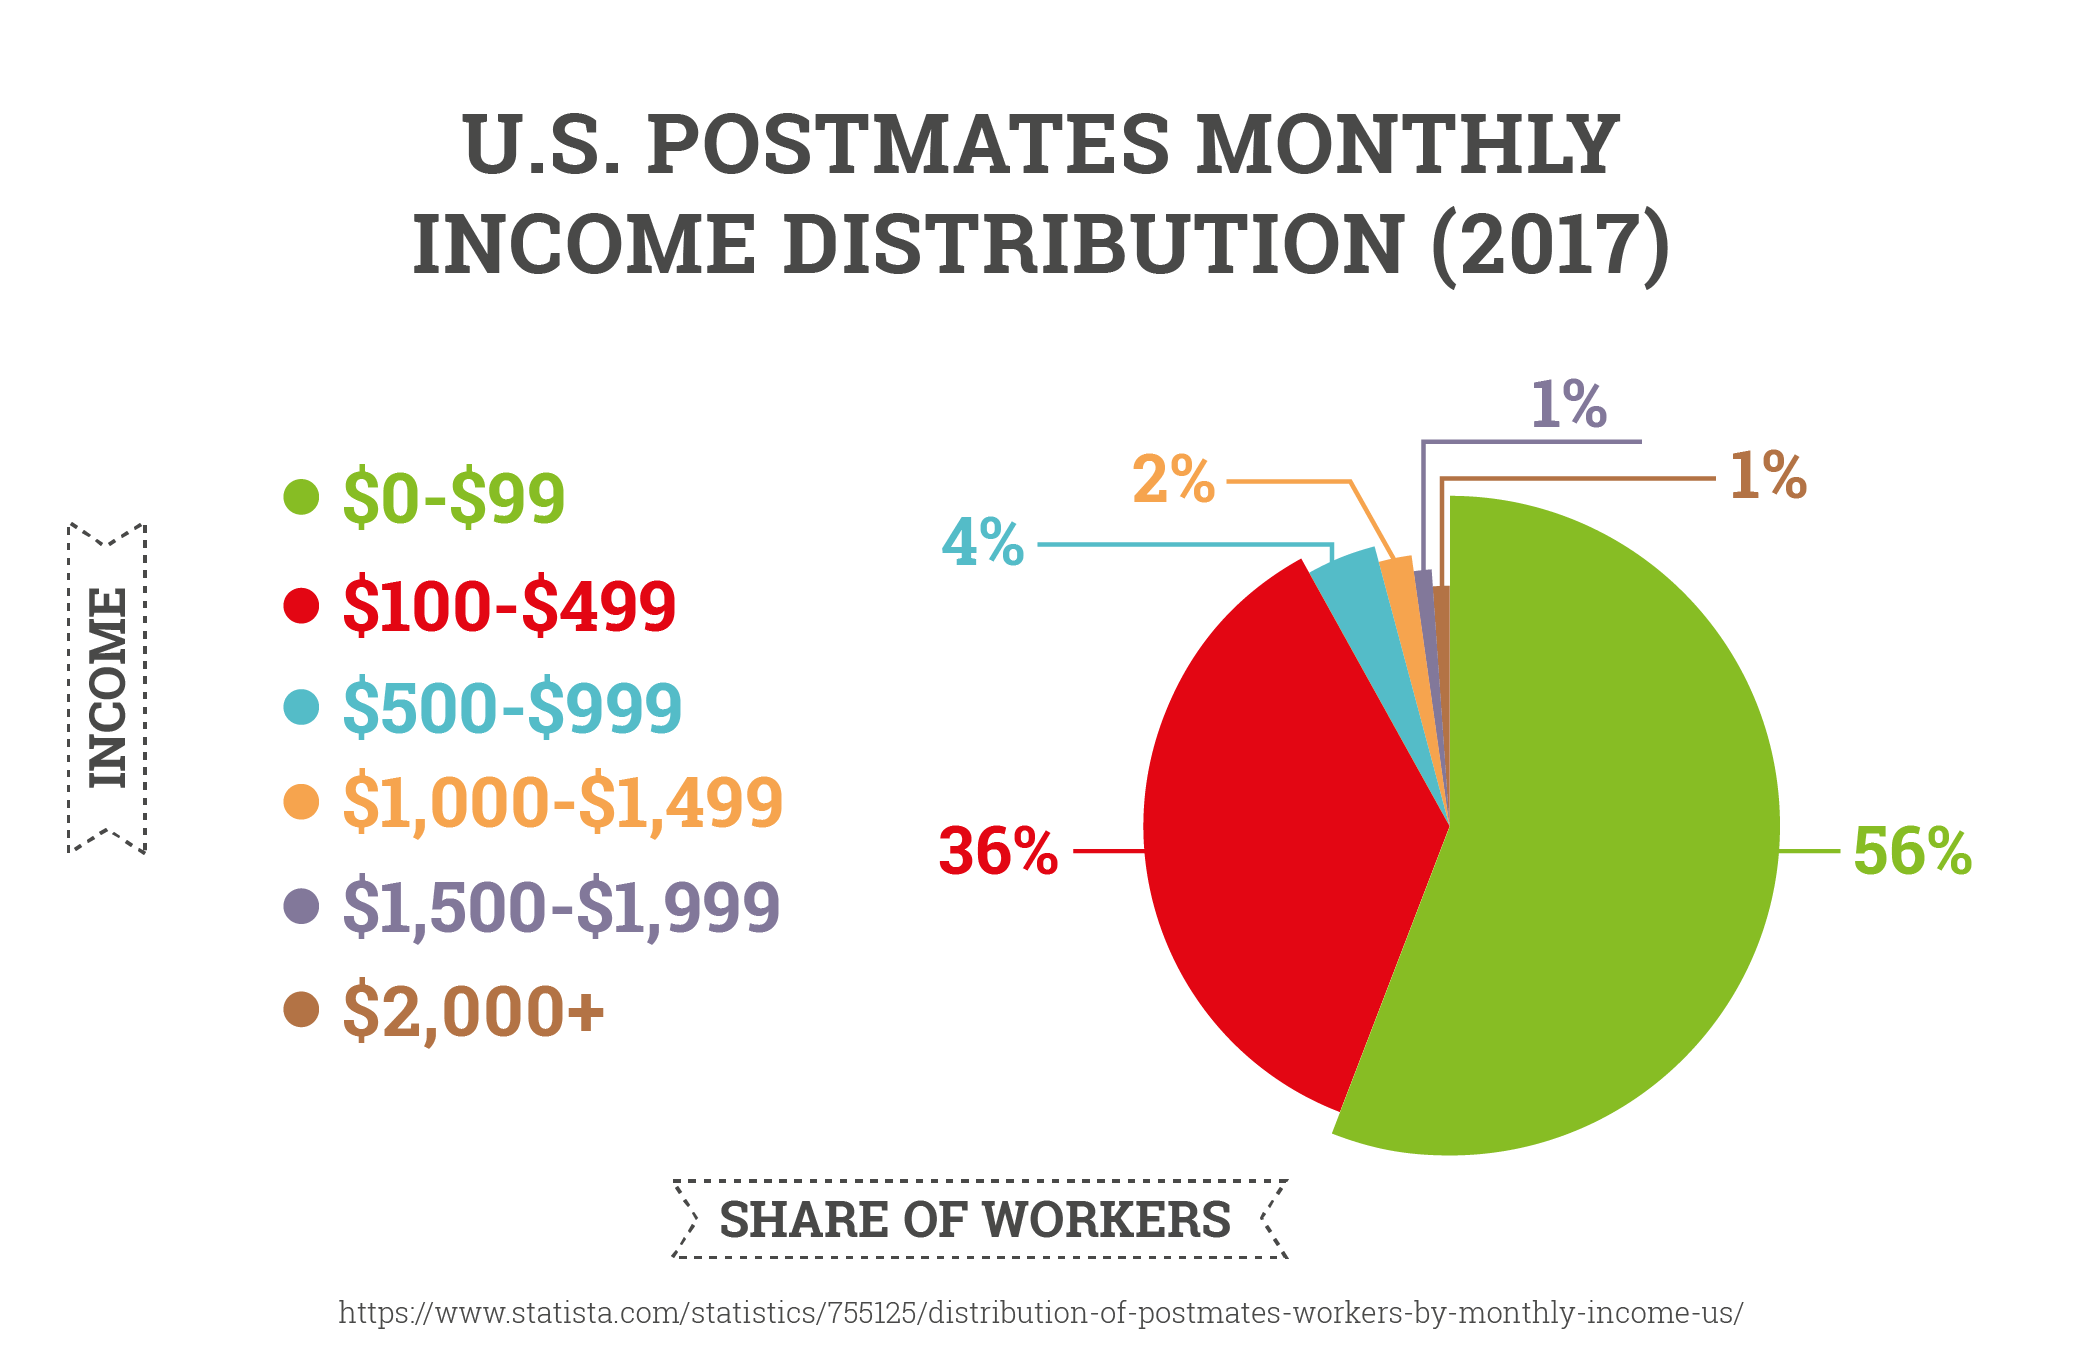 U.S. Postmates Monthly Income Distribution (2017)